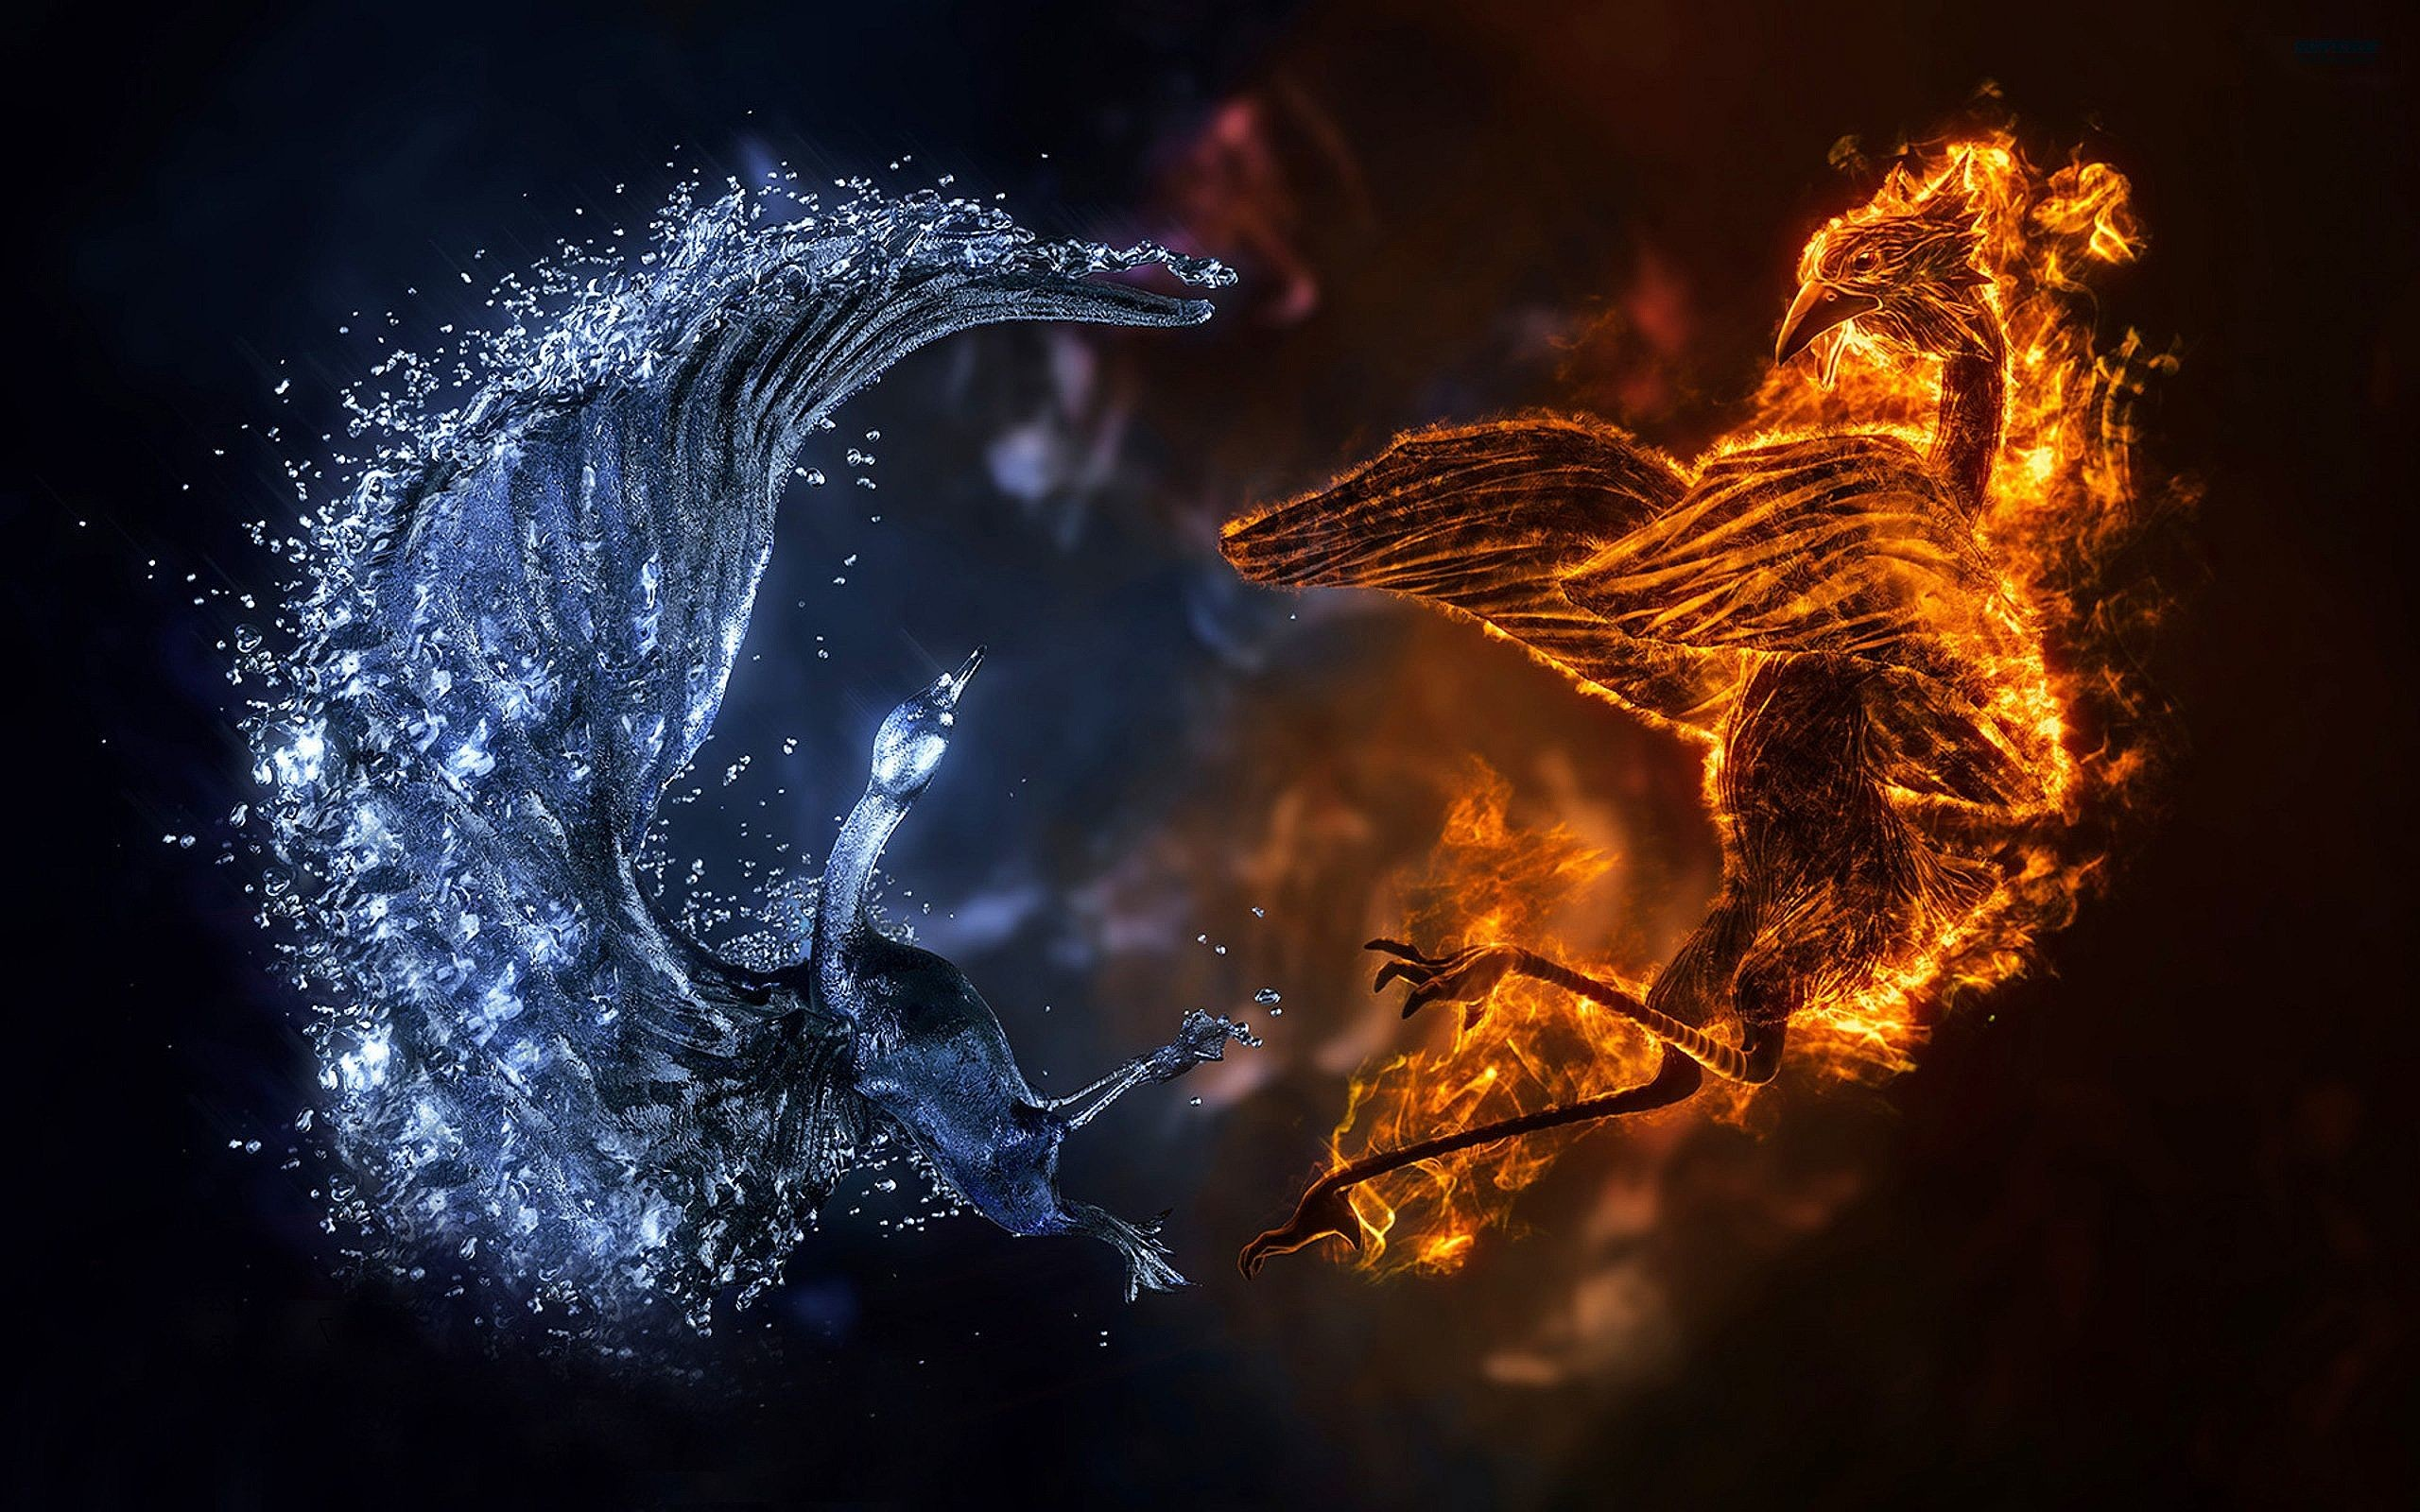 2560x1600 Fire And Ice Wallpapers Abstract 3d wallpaper f... fire and ice